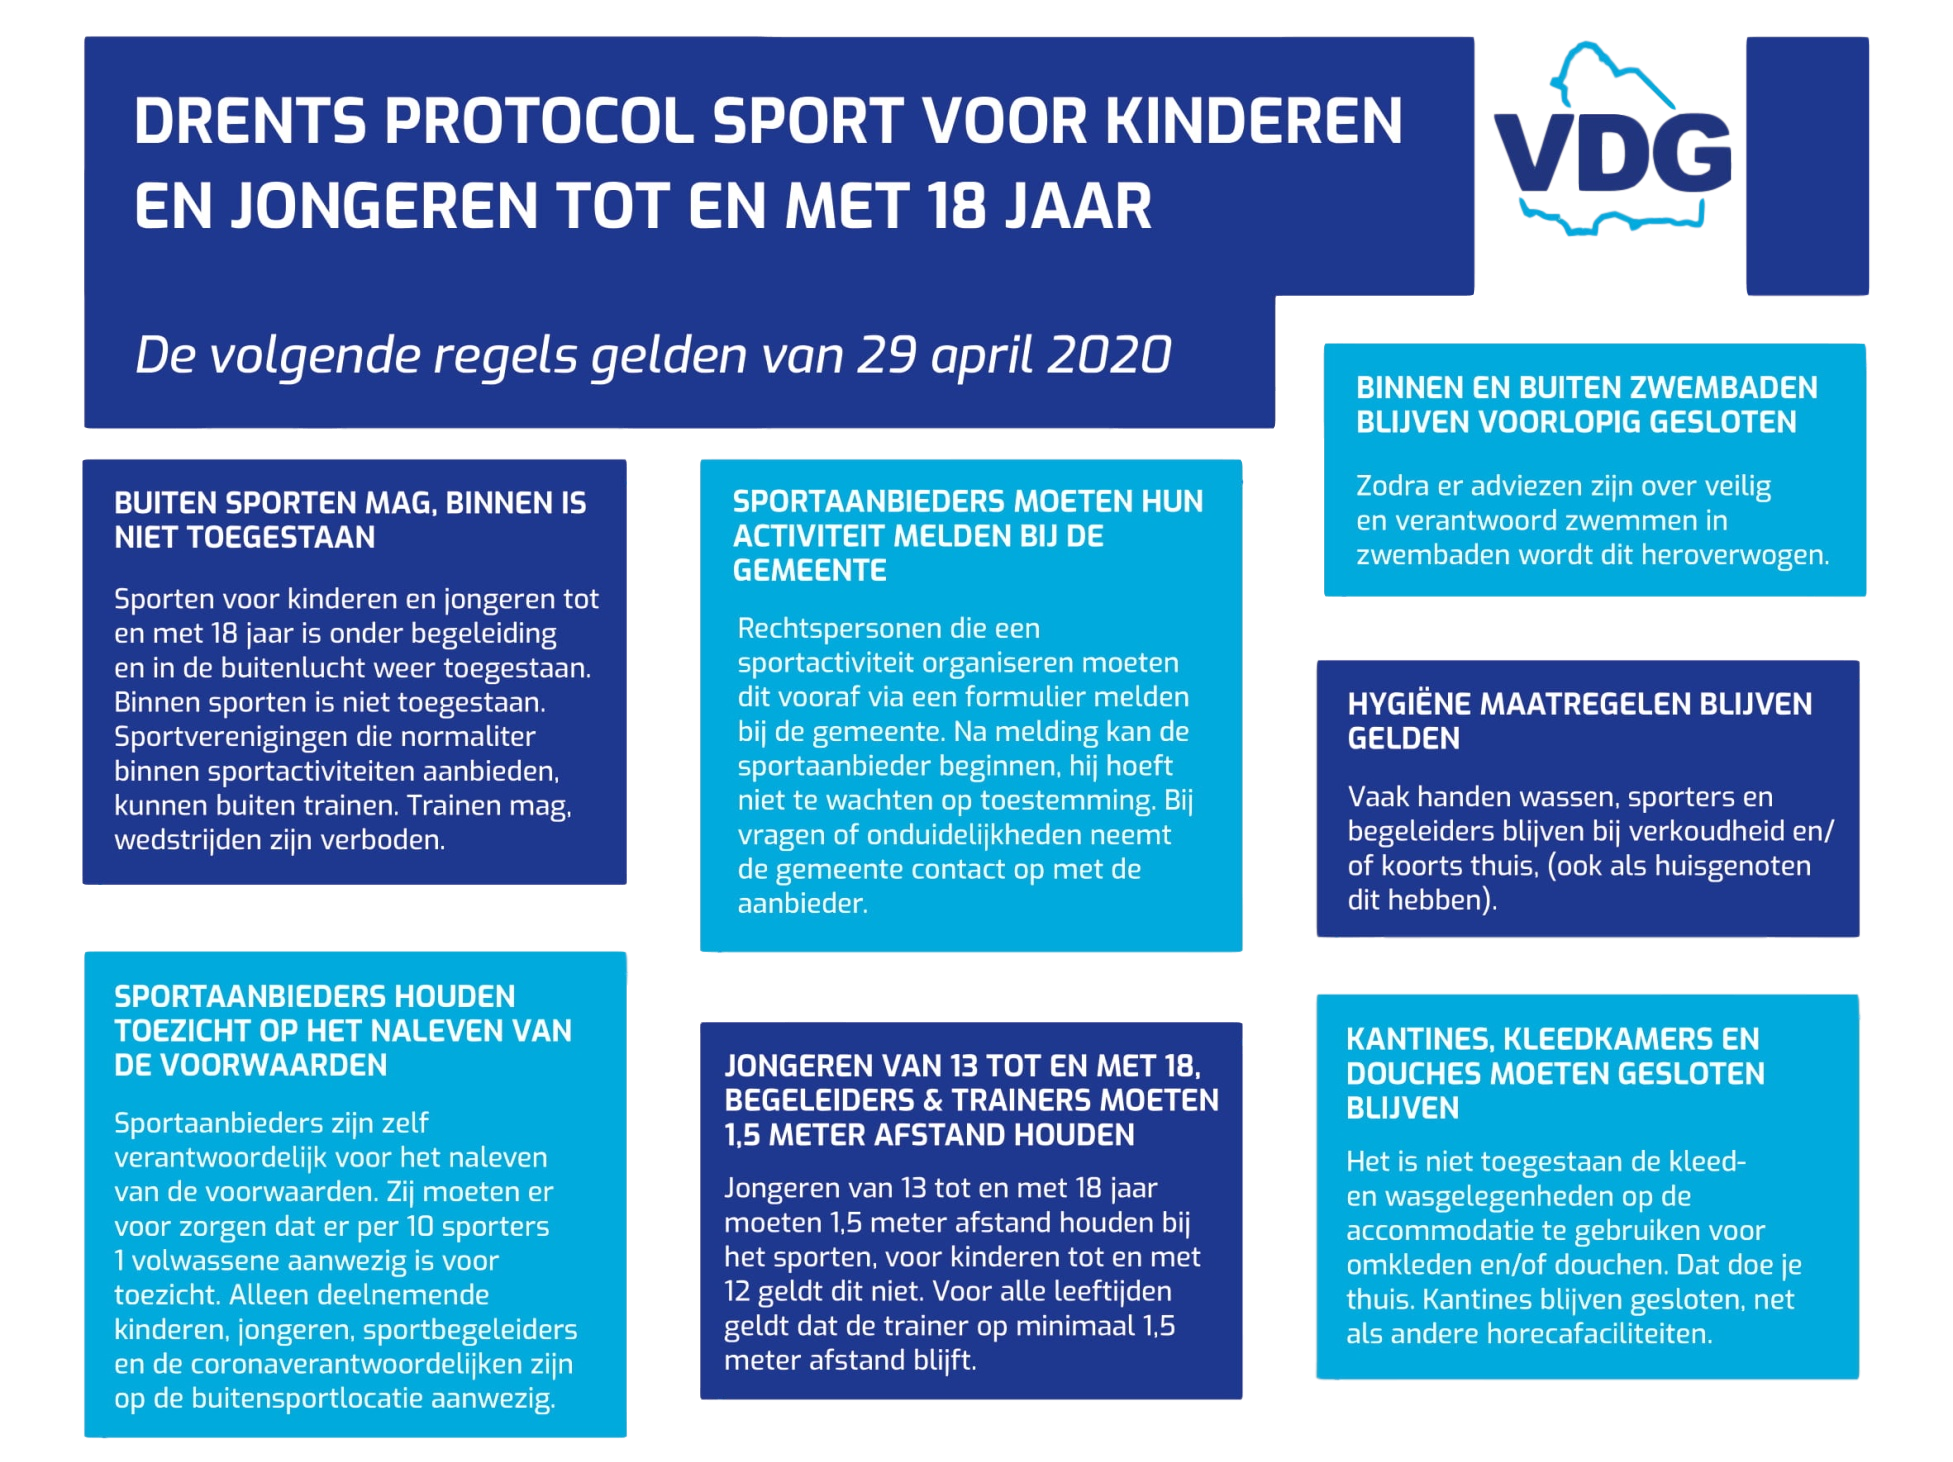 factsheet_sporten_drenthe-1_clipped_rev_2.png